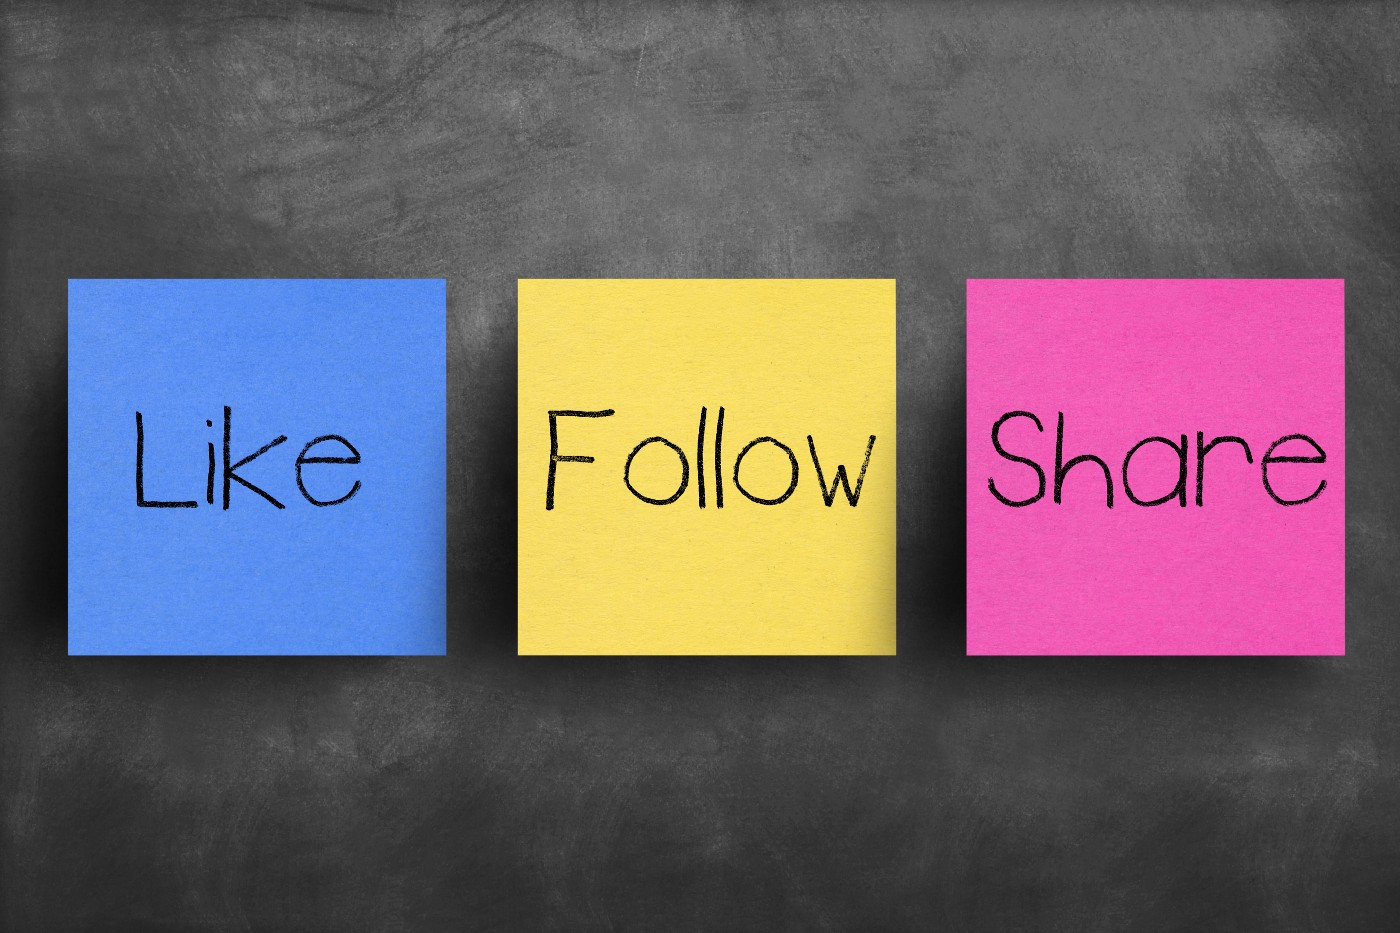 blue like, yellow follow and purple share post-it notes on black chalkboard